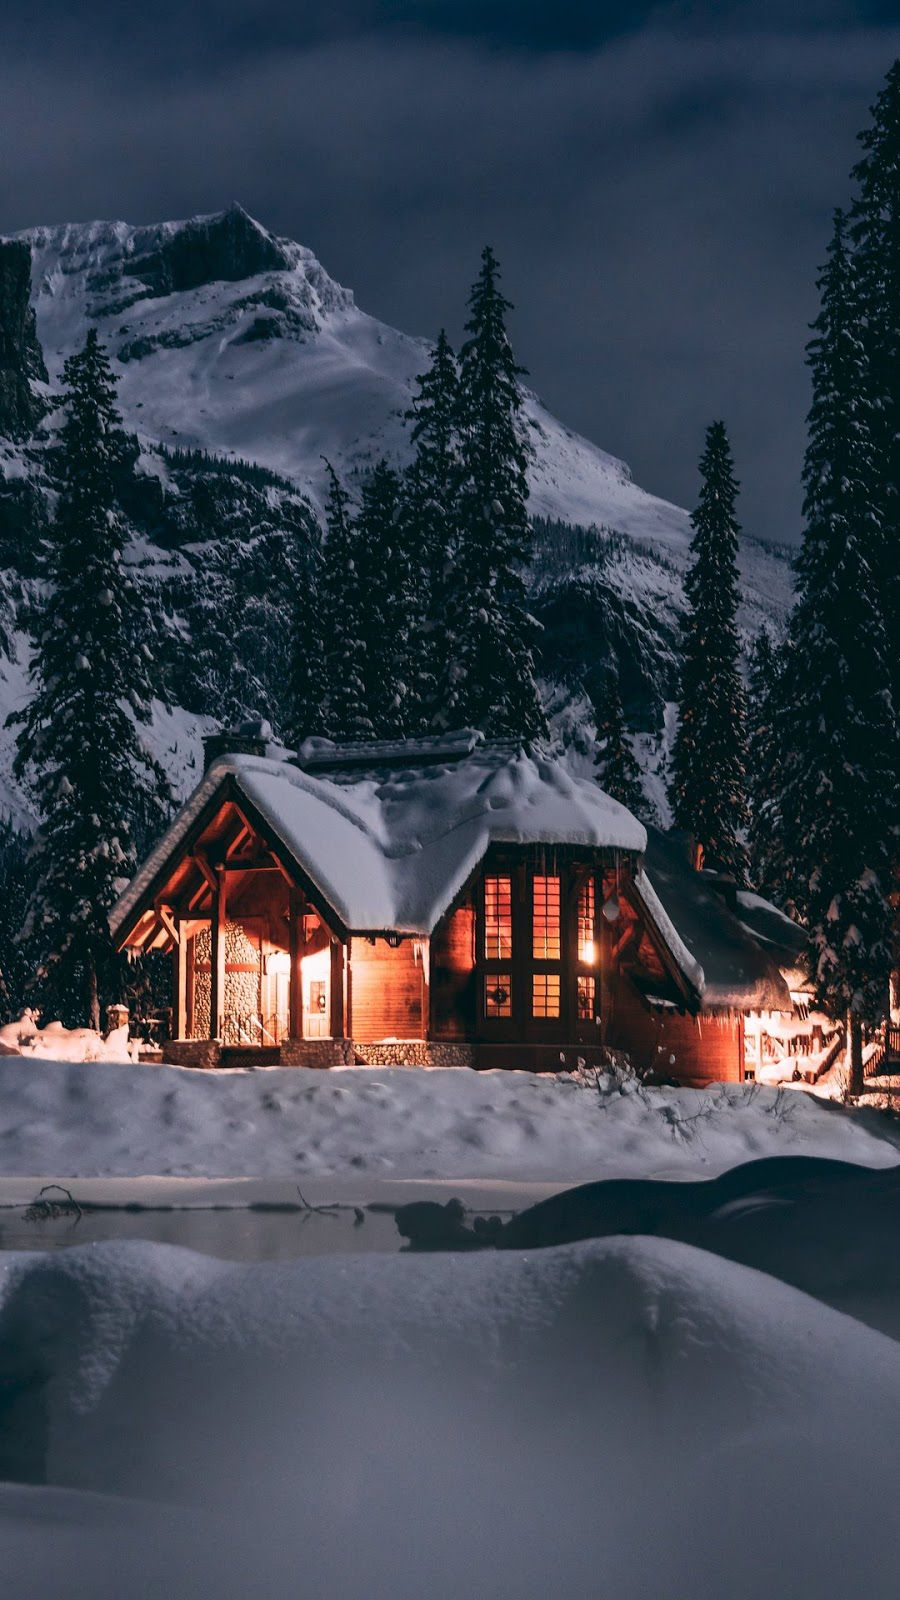 Mountain Wallpapers Free Download Best Mountain Wallpapers For Mobile 16 In 2020 House Mountain Wallpaper Winter Aesthetic